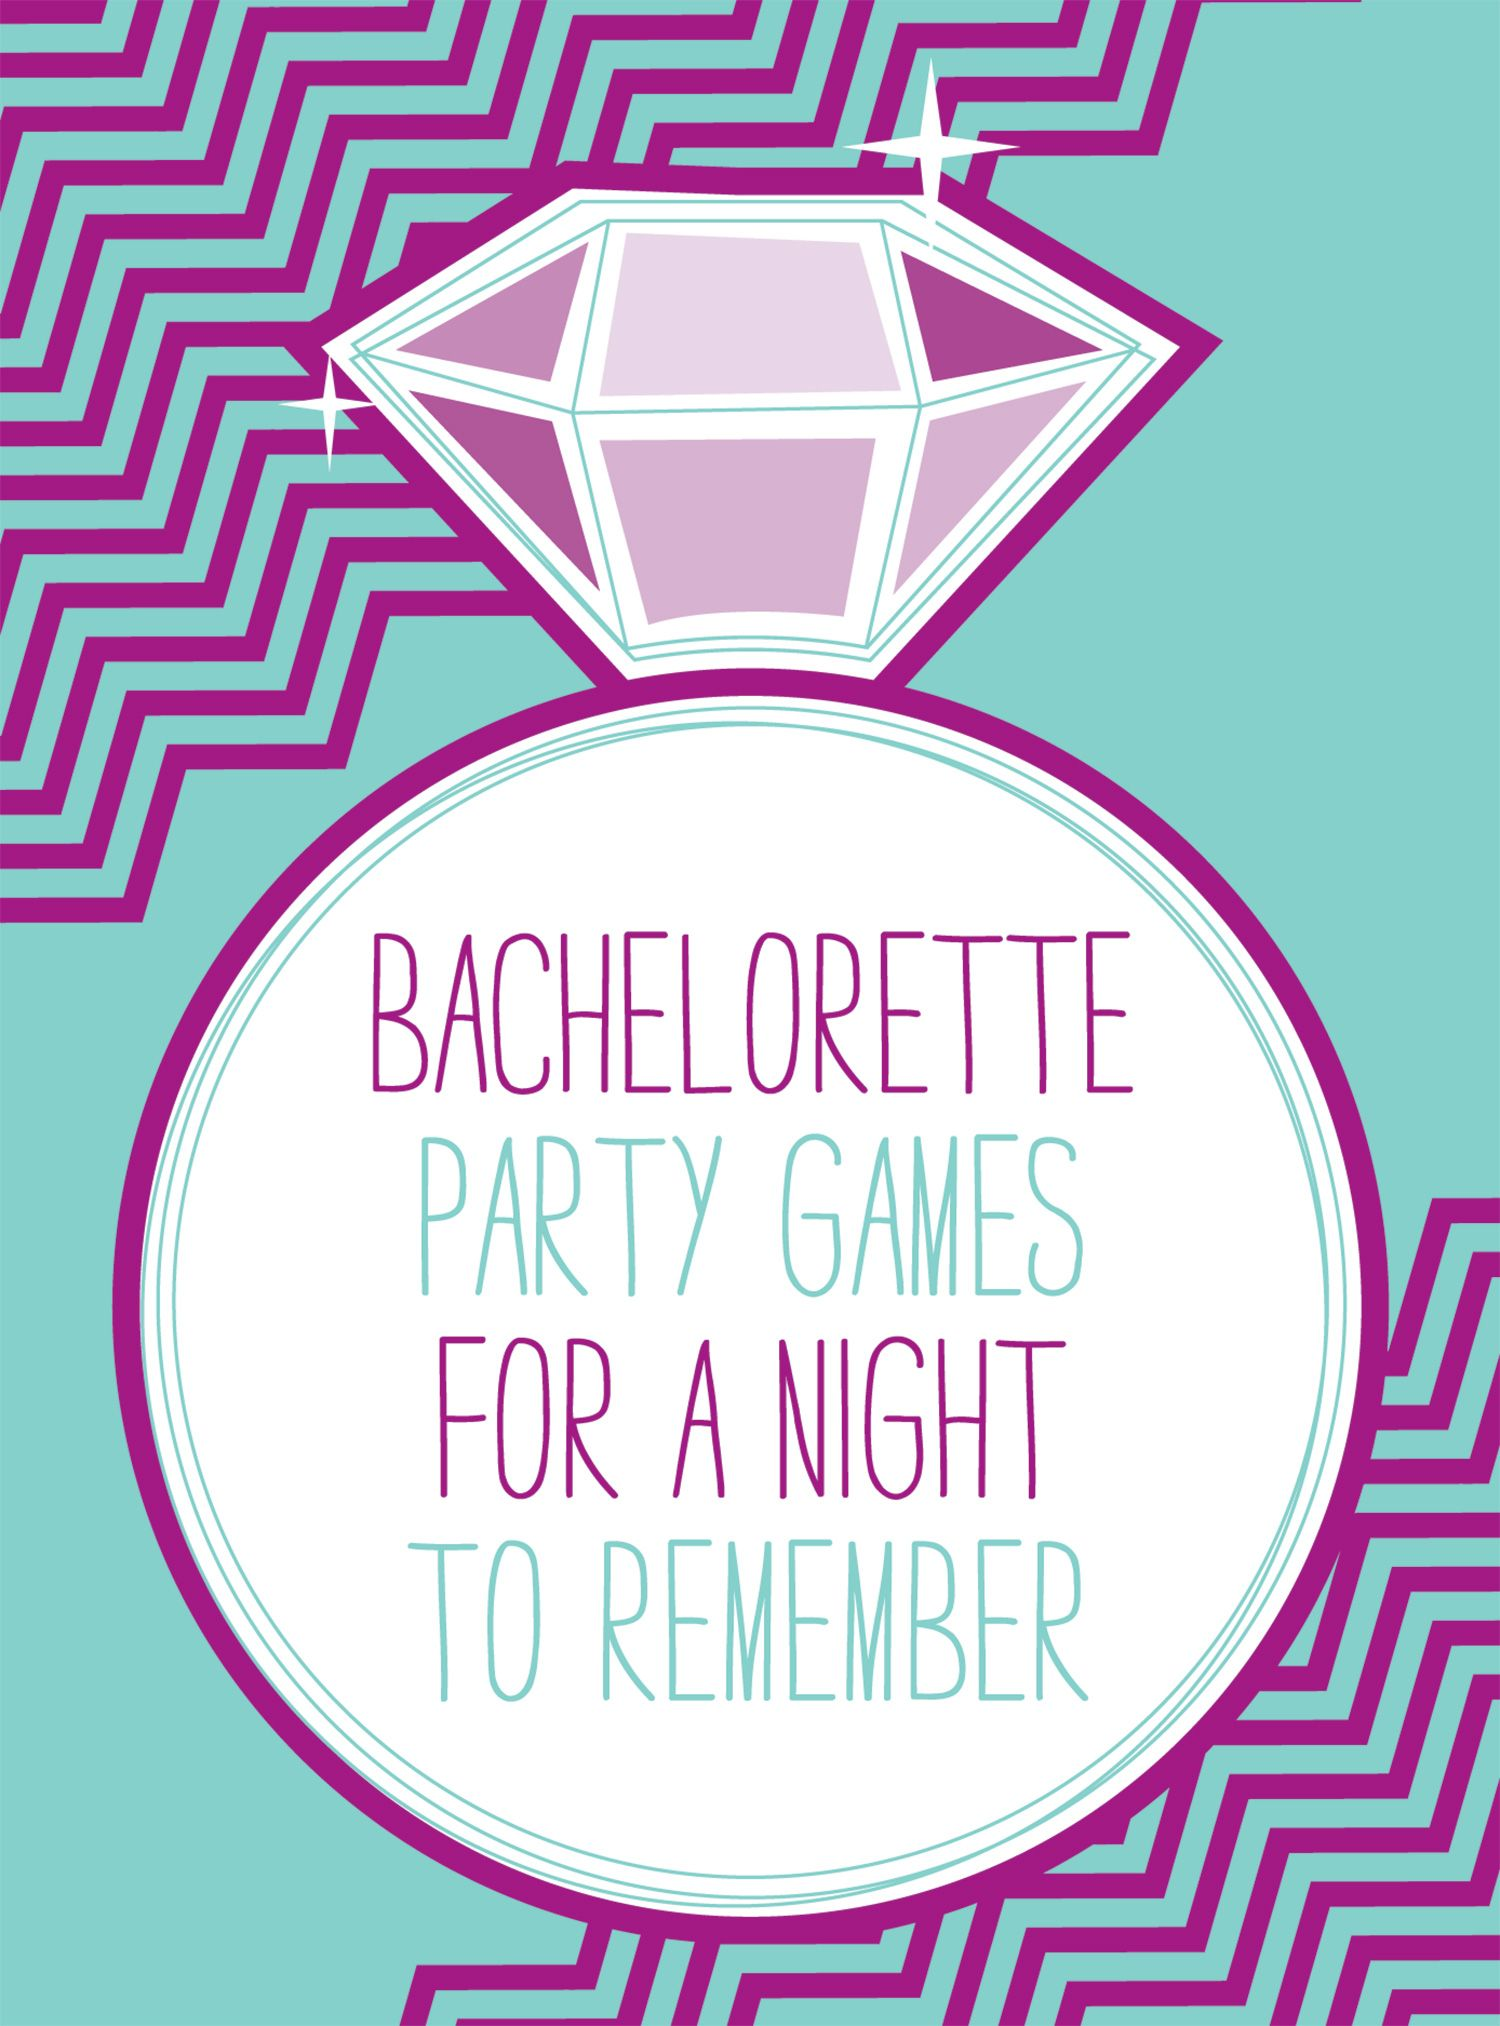 Bachelorette party games for a night to remember | Pinterest ...